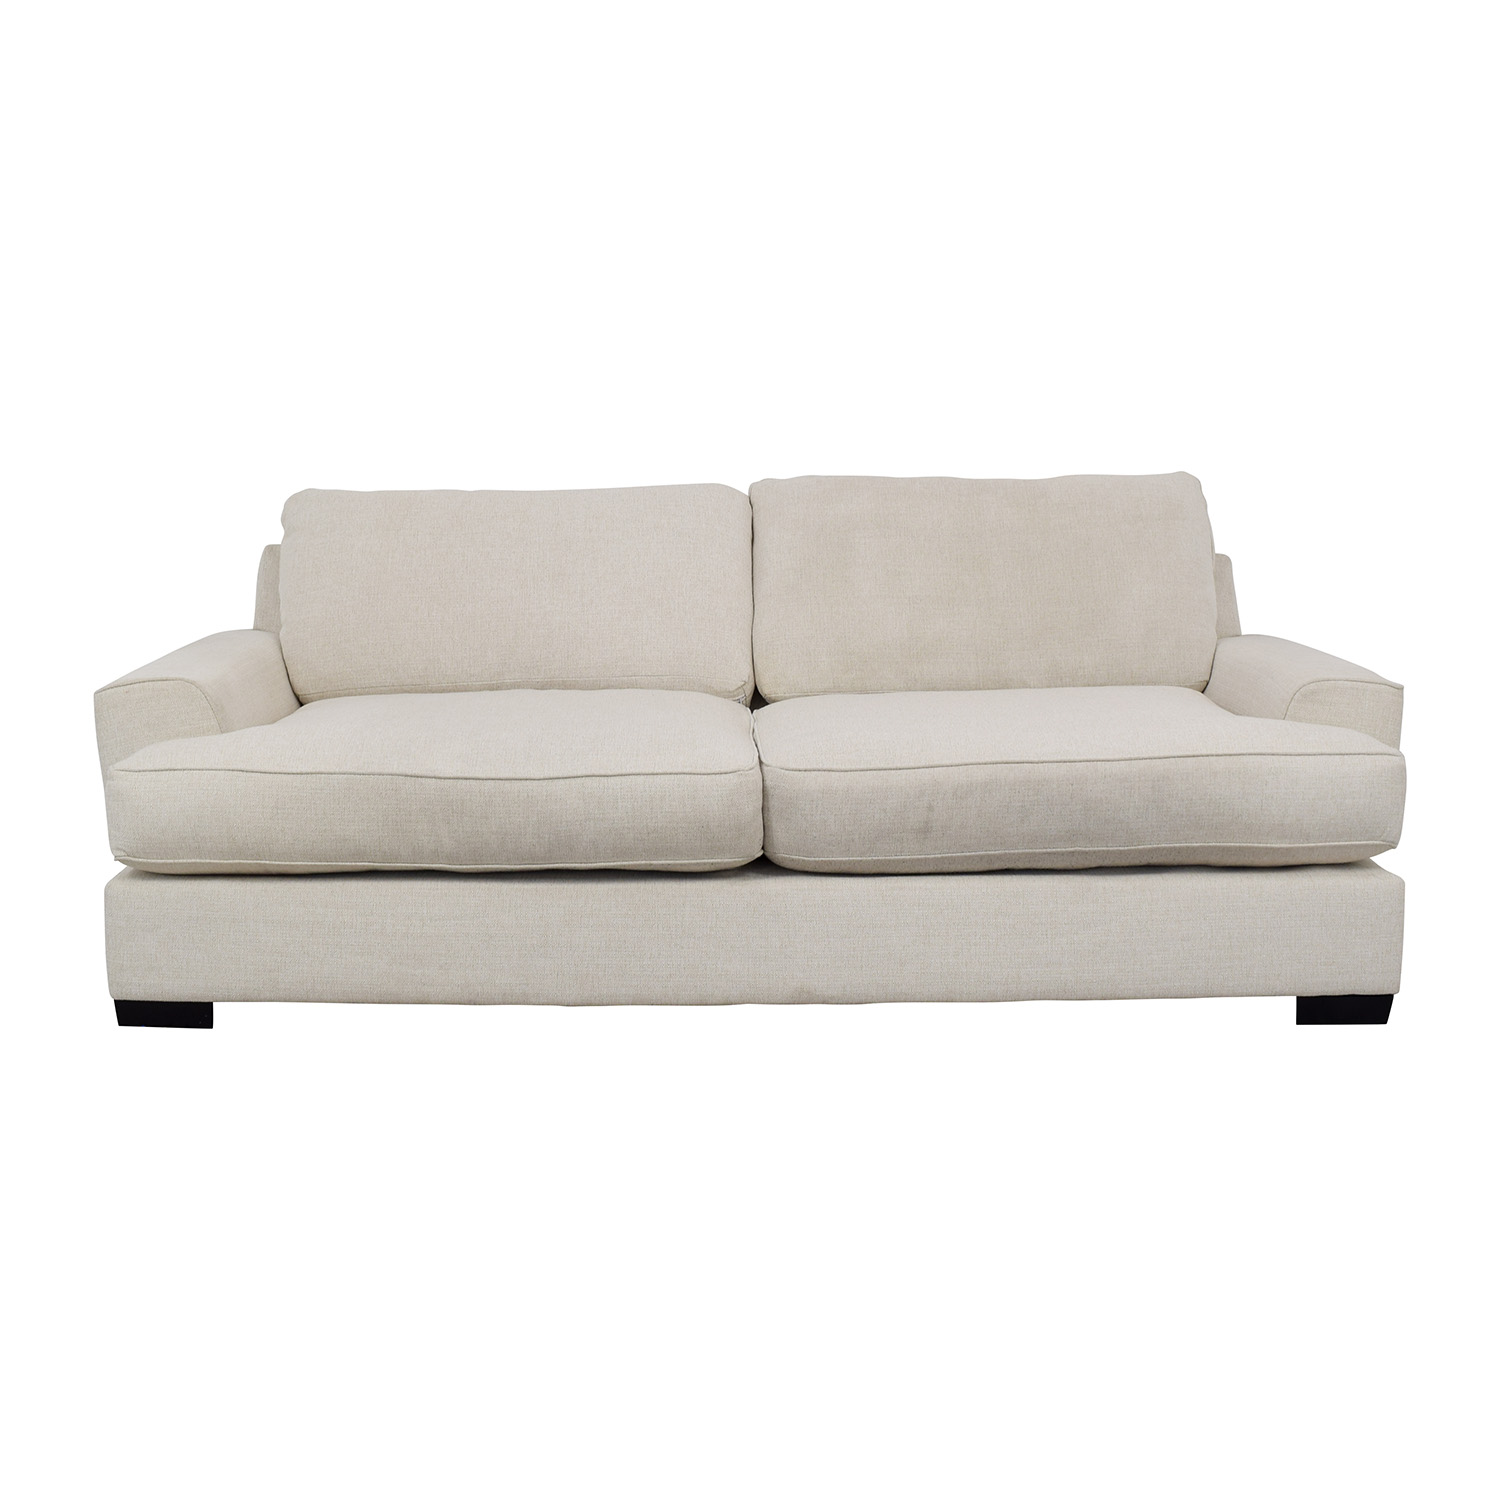 Macy's Macy's Ainsley Fabric Sofa for sale